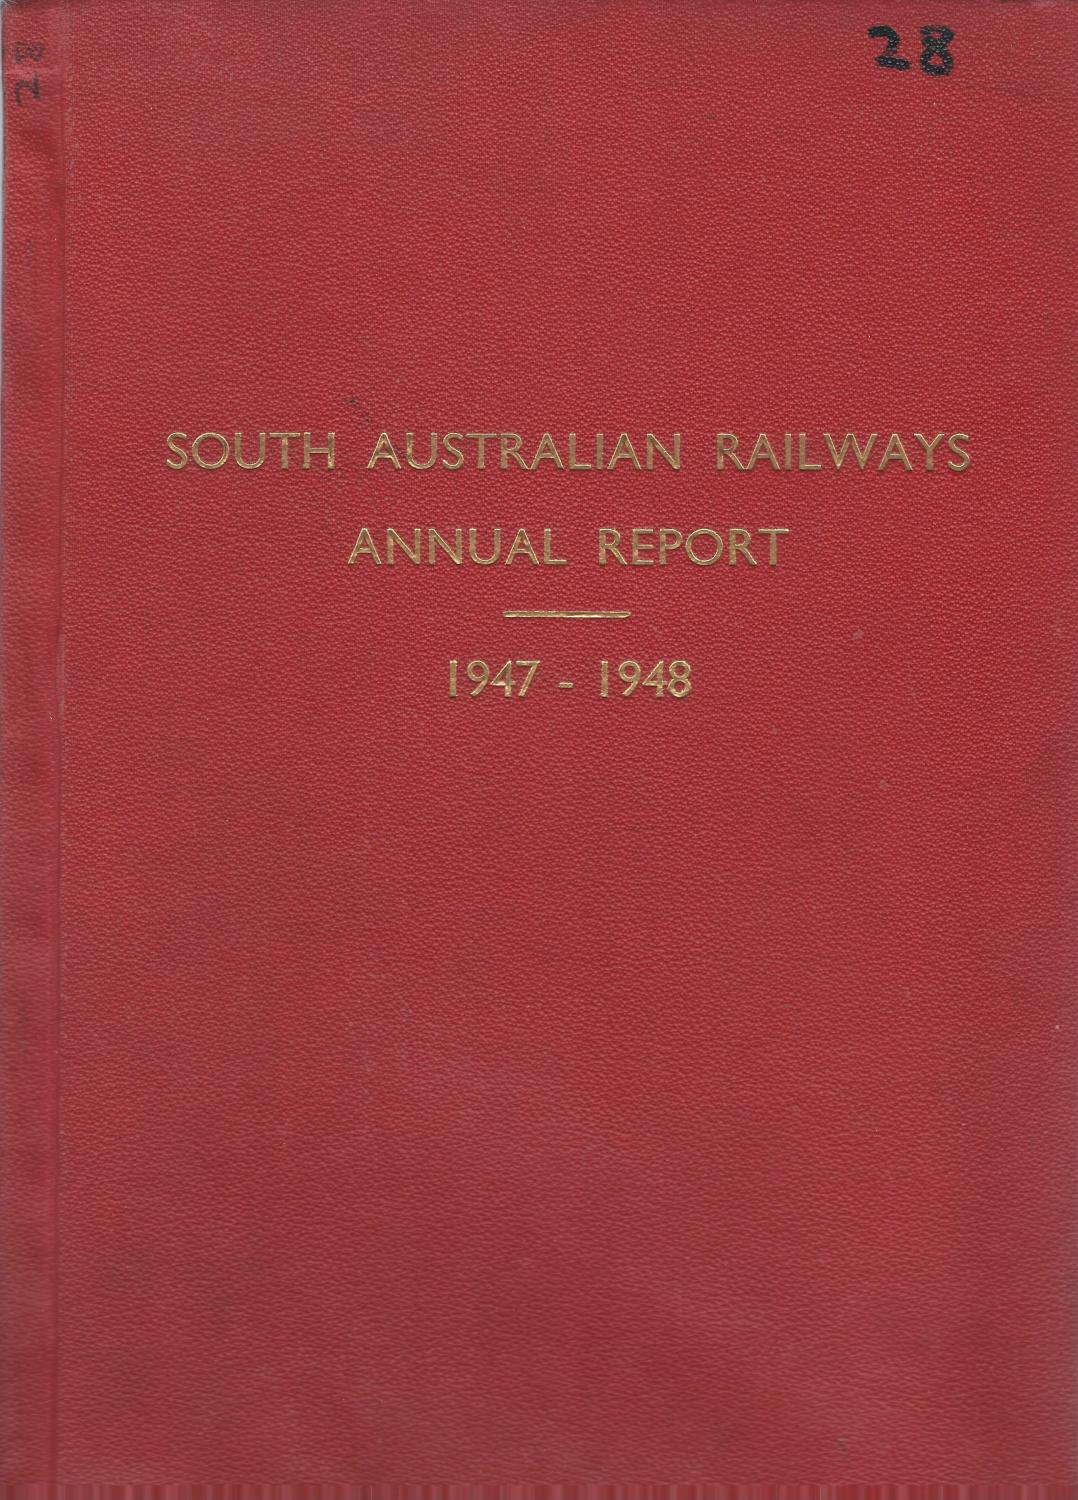 Annual Report of the South Australian Railways Commissioner 1947-48 South Australian Railways Commissioner